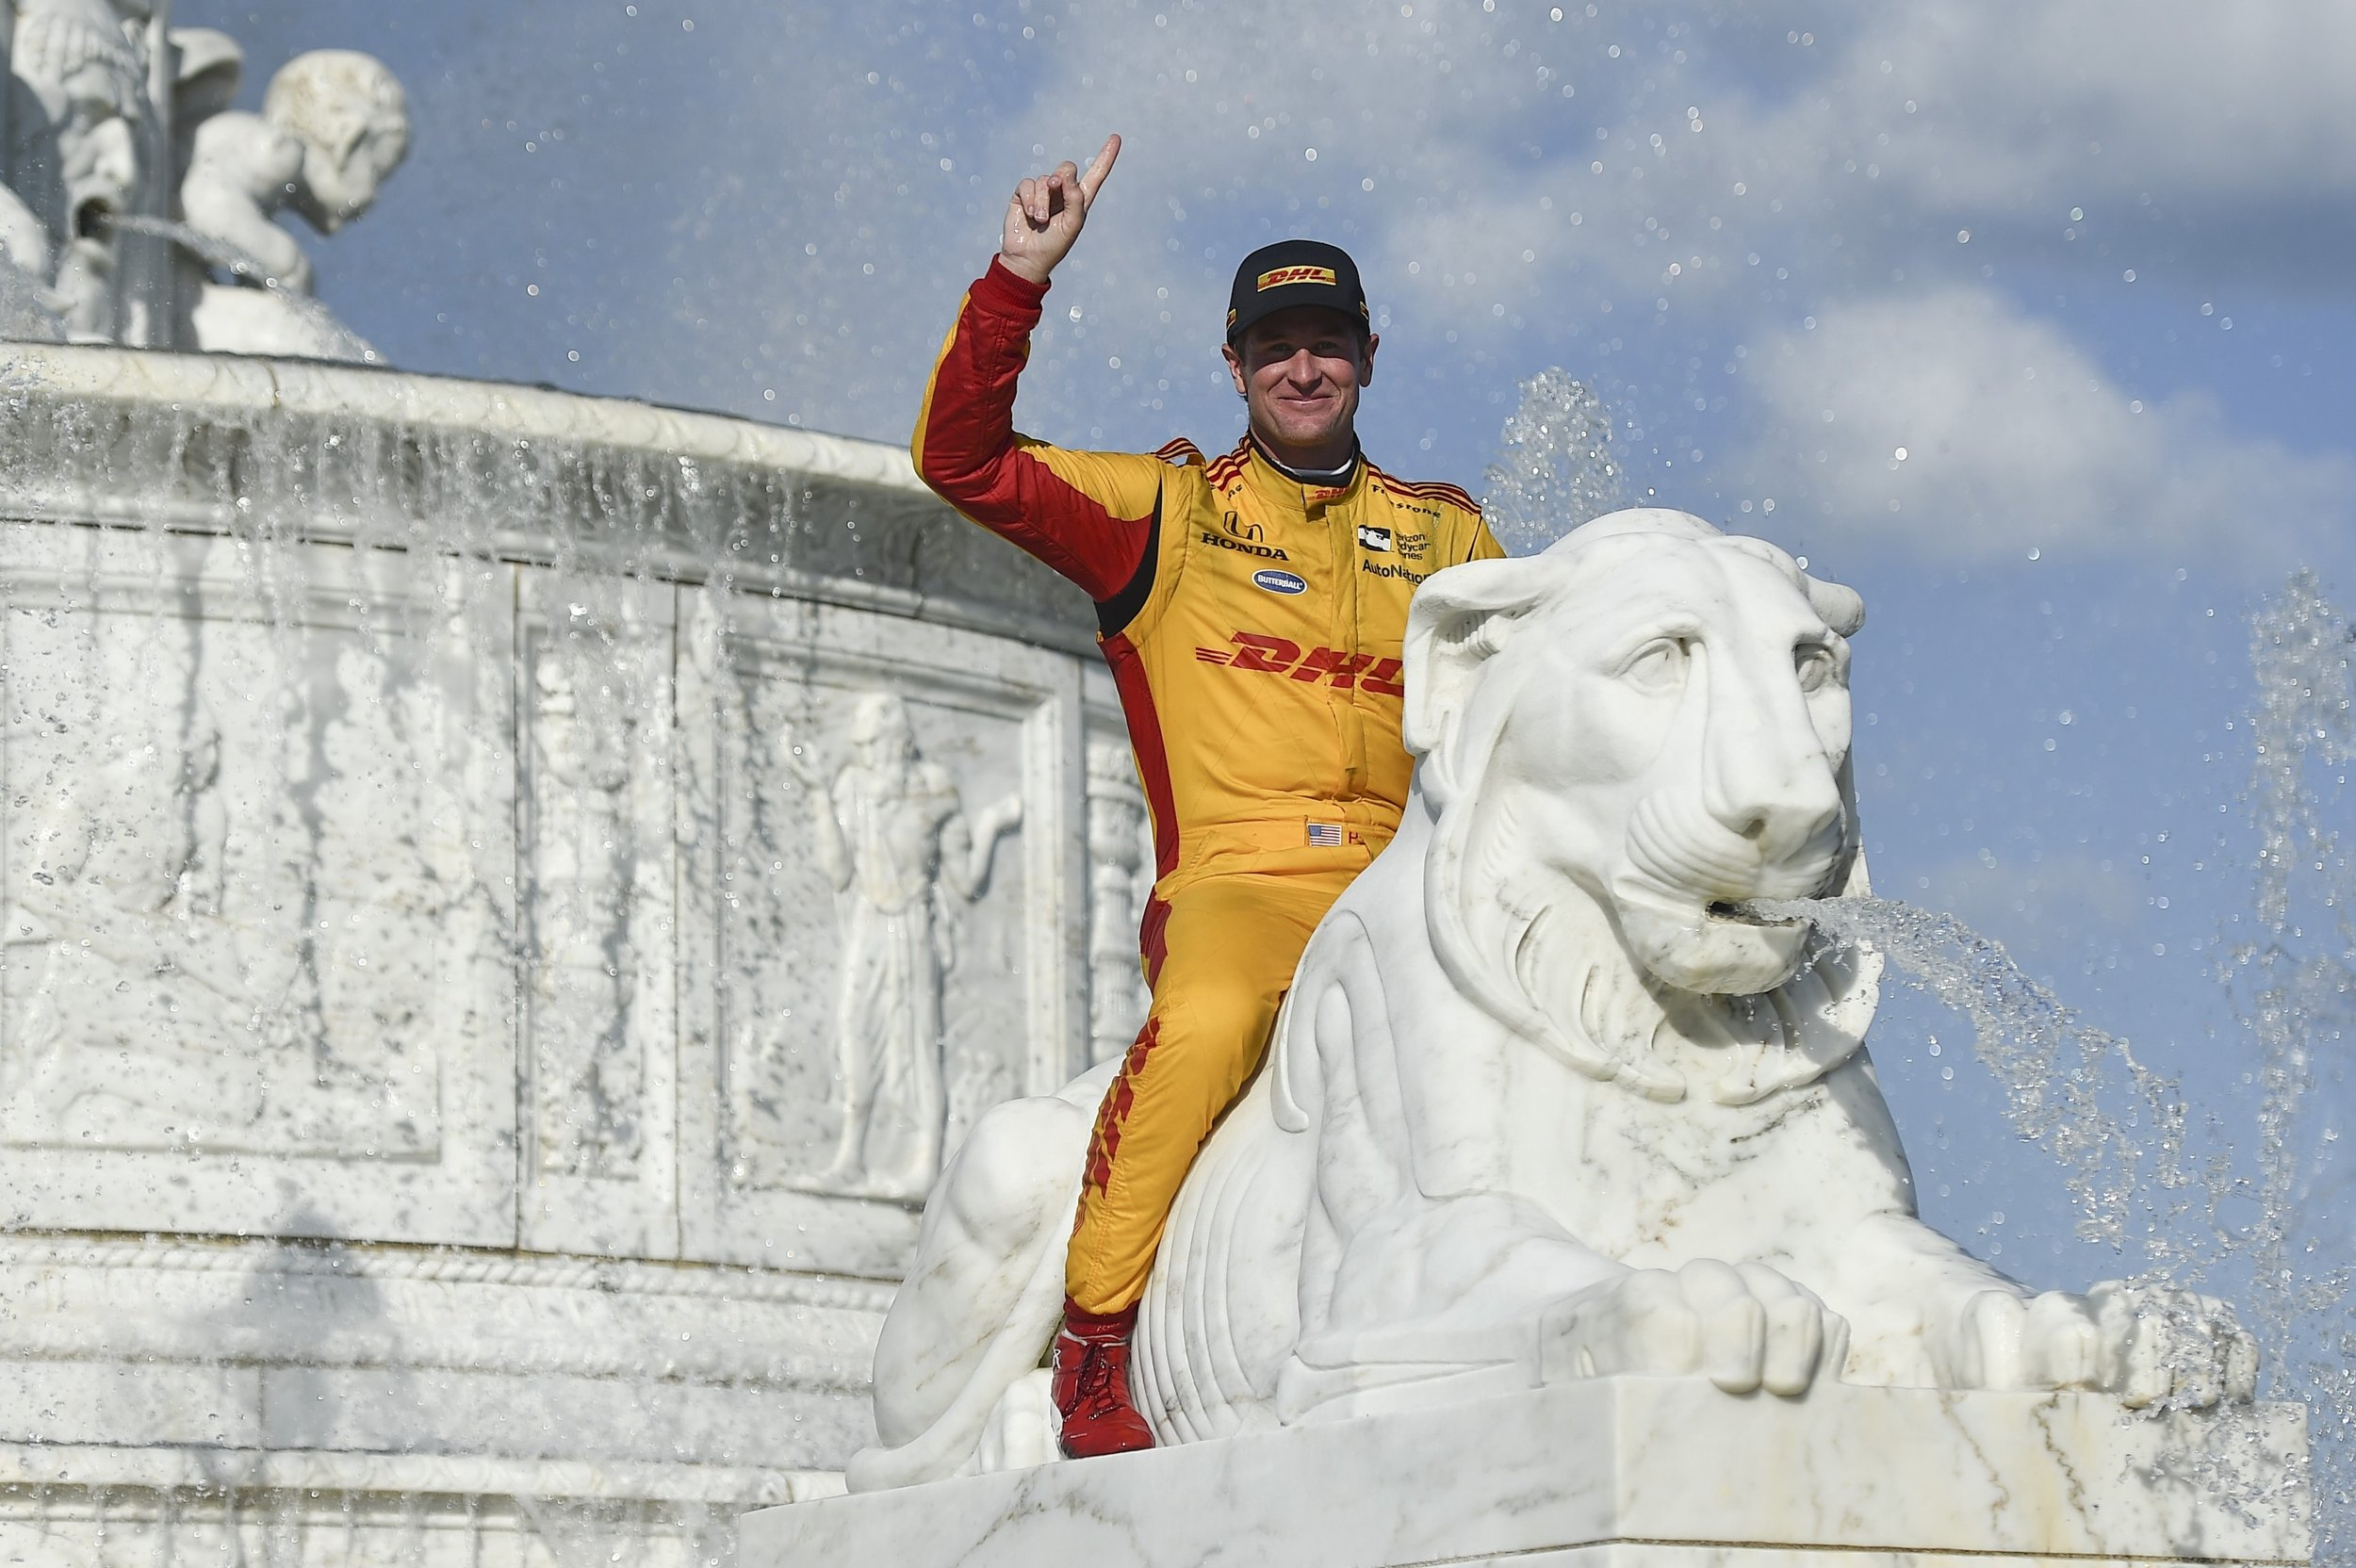 """There he was in the fountain after winning this year in Detroit. I yelled over to him """"Ryan, hop up on that lion"""" Here you have it!"""